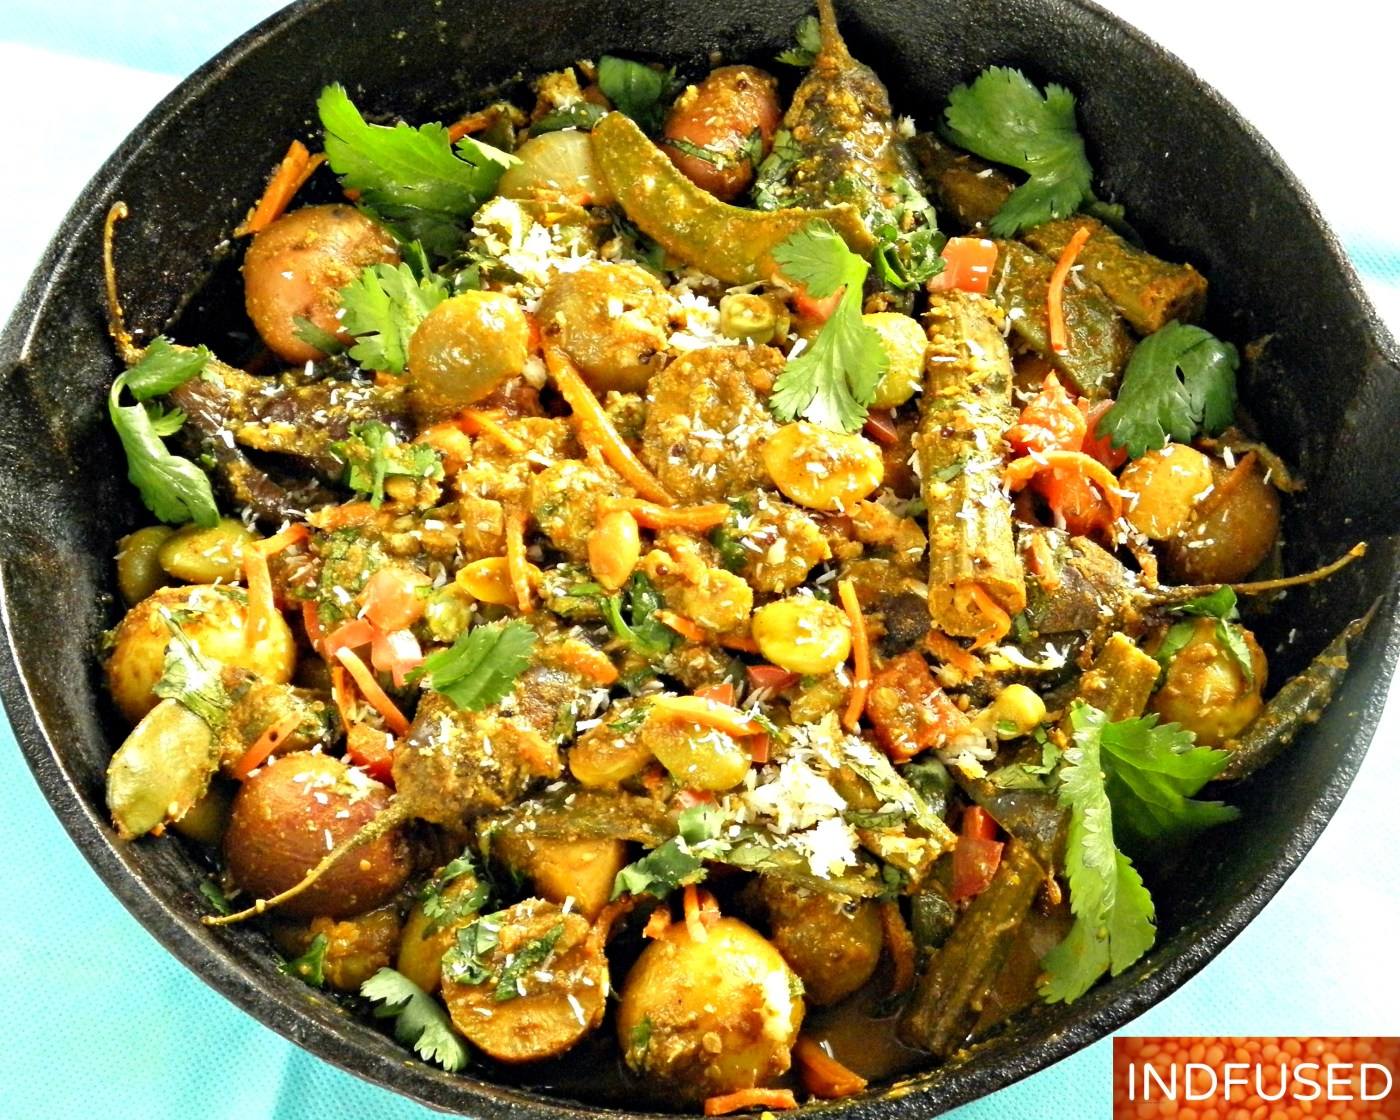 Winter harvest vegetables in a hearty, vegan, gluten free, vegetarian stew/bhaji with peanuts and sesame seeds. Easy Indian heirloom festival recipe.